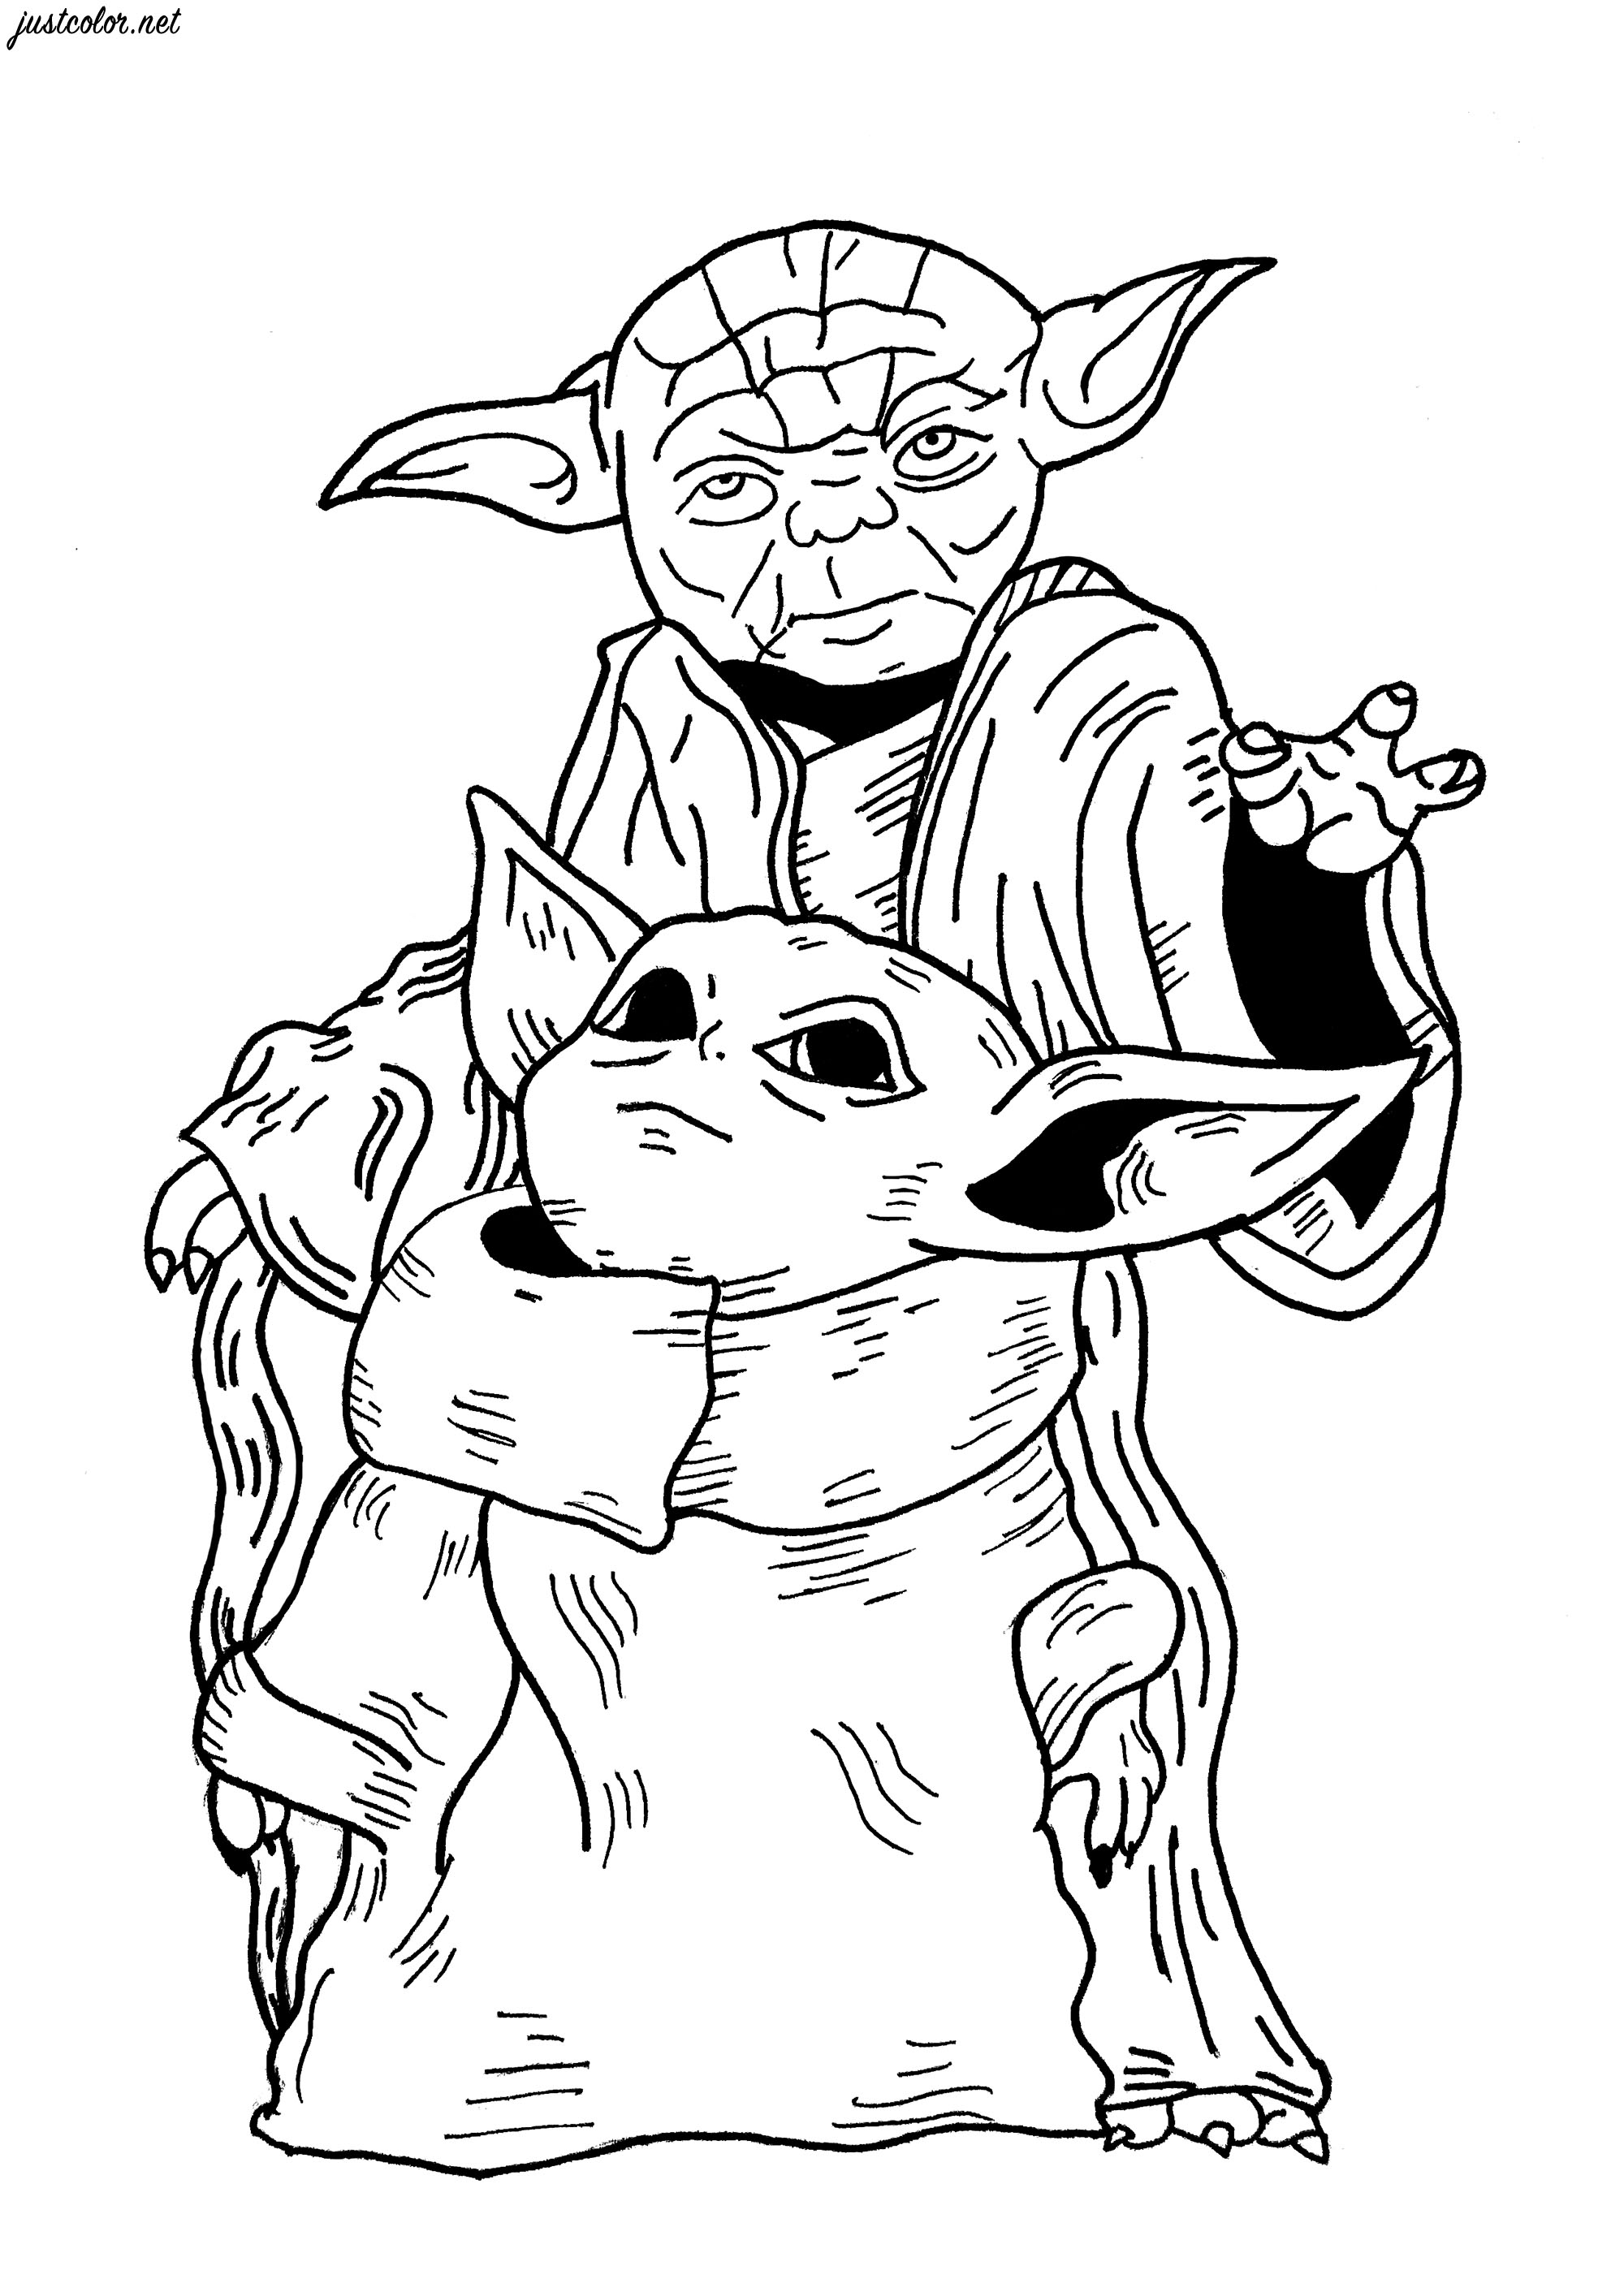 Baby Yoda Yoda Star Wars Movies Adult Coloring Pages